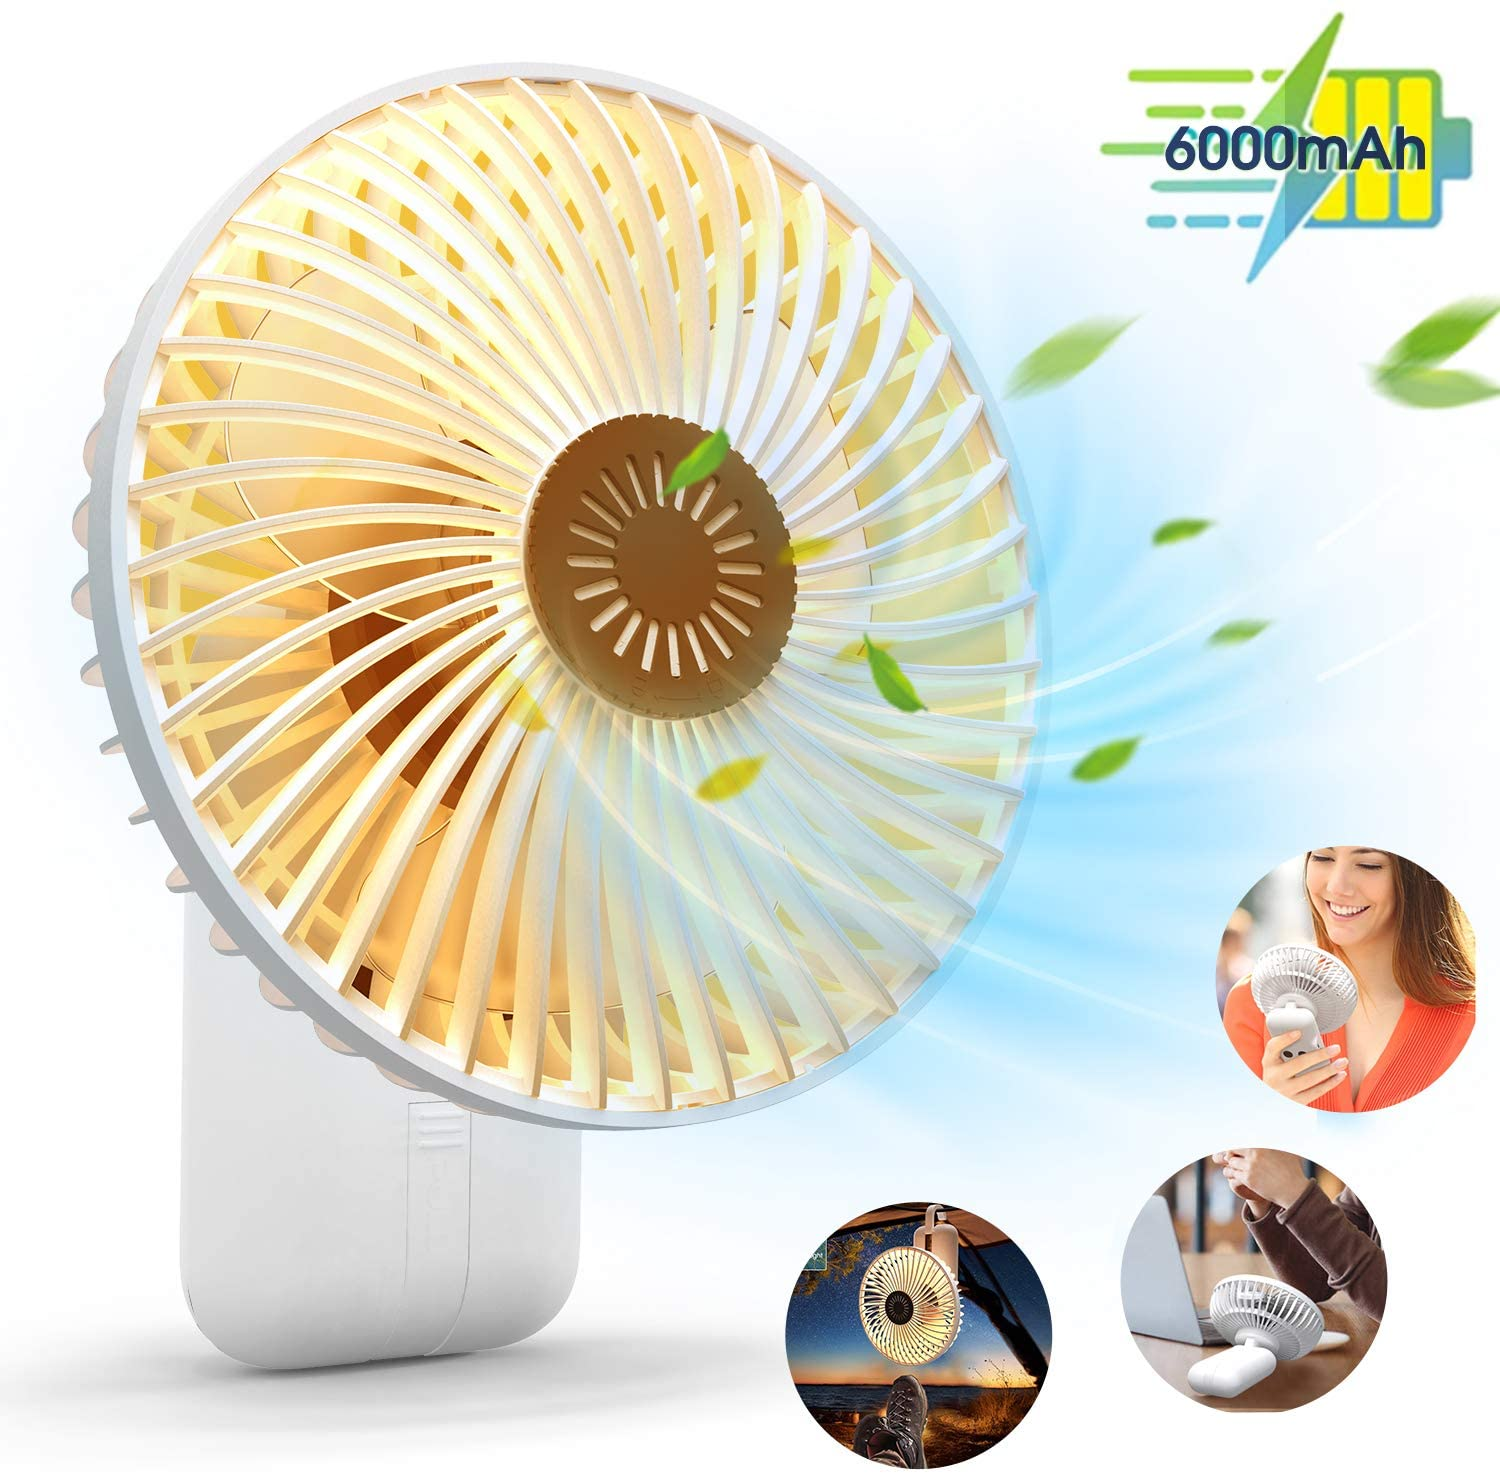 KOXXBASS Portable Fan 5200mAh Desk Fan USB Camping Fan Rechargeable Battery Operated Handheld Stroller Fan with Camping Lantern and Hanging Hook for Tent Car RV Hurricane Emergency Outages